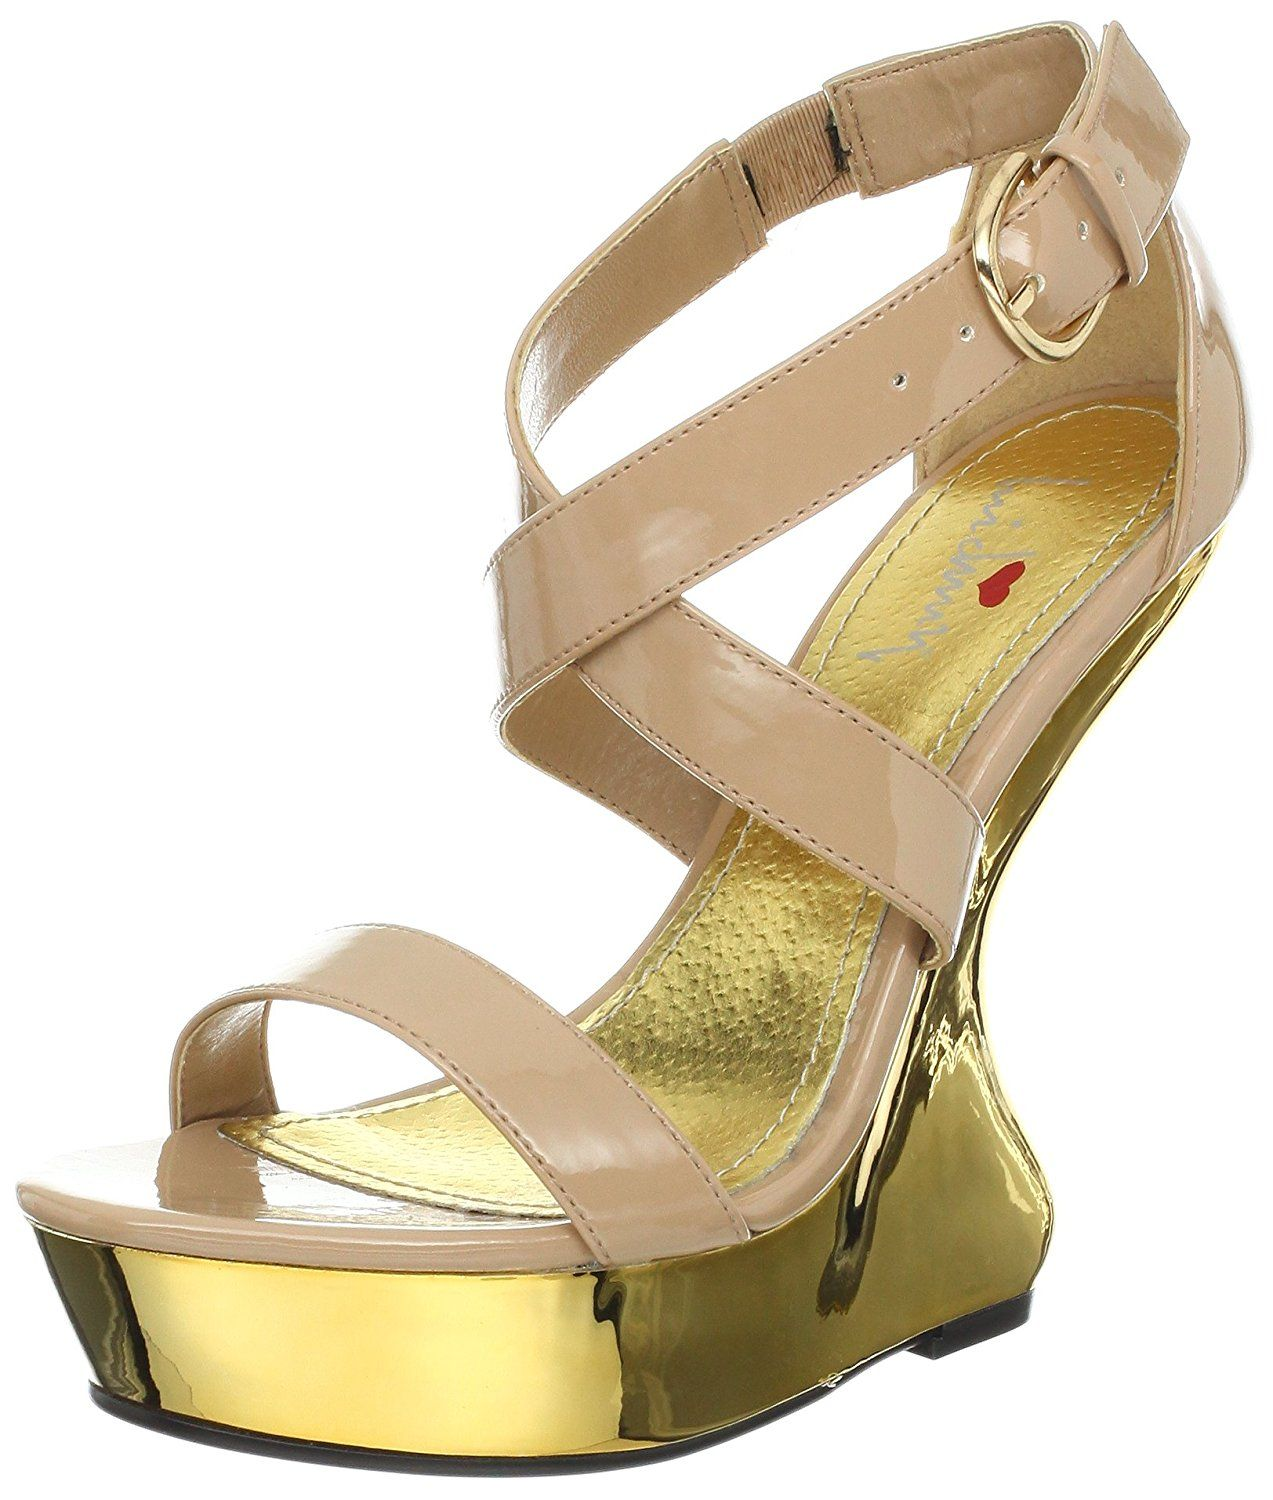 7f134137f95 Luichiny Women s Gear Up Wedge Sandal     Trust me